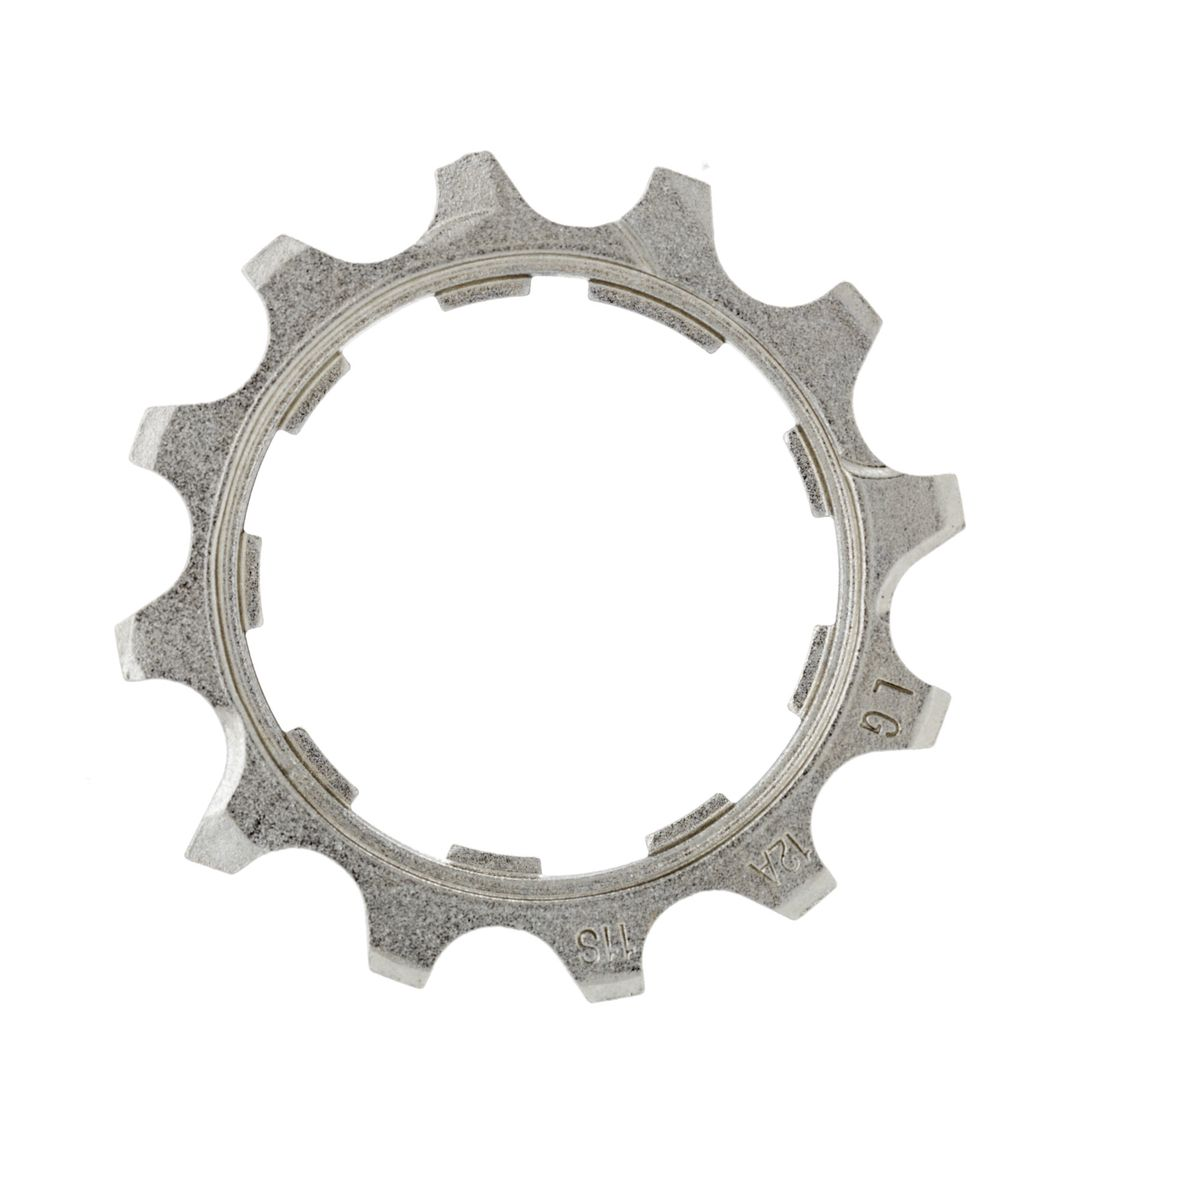 Ultegra R8000/6800 11-speed, 12-tooth replacement sprocket